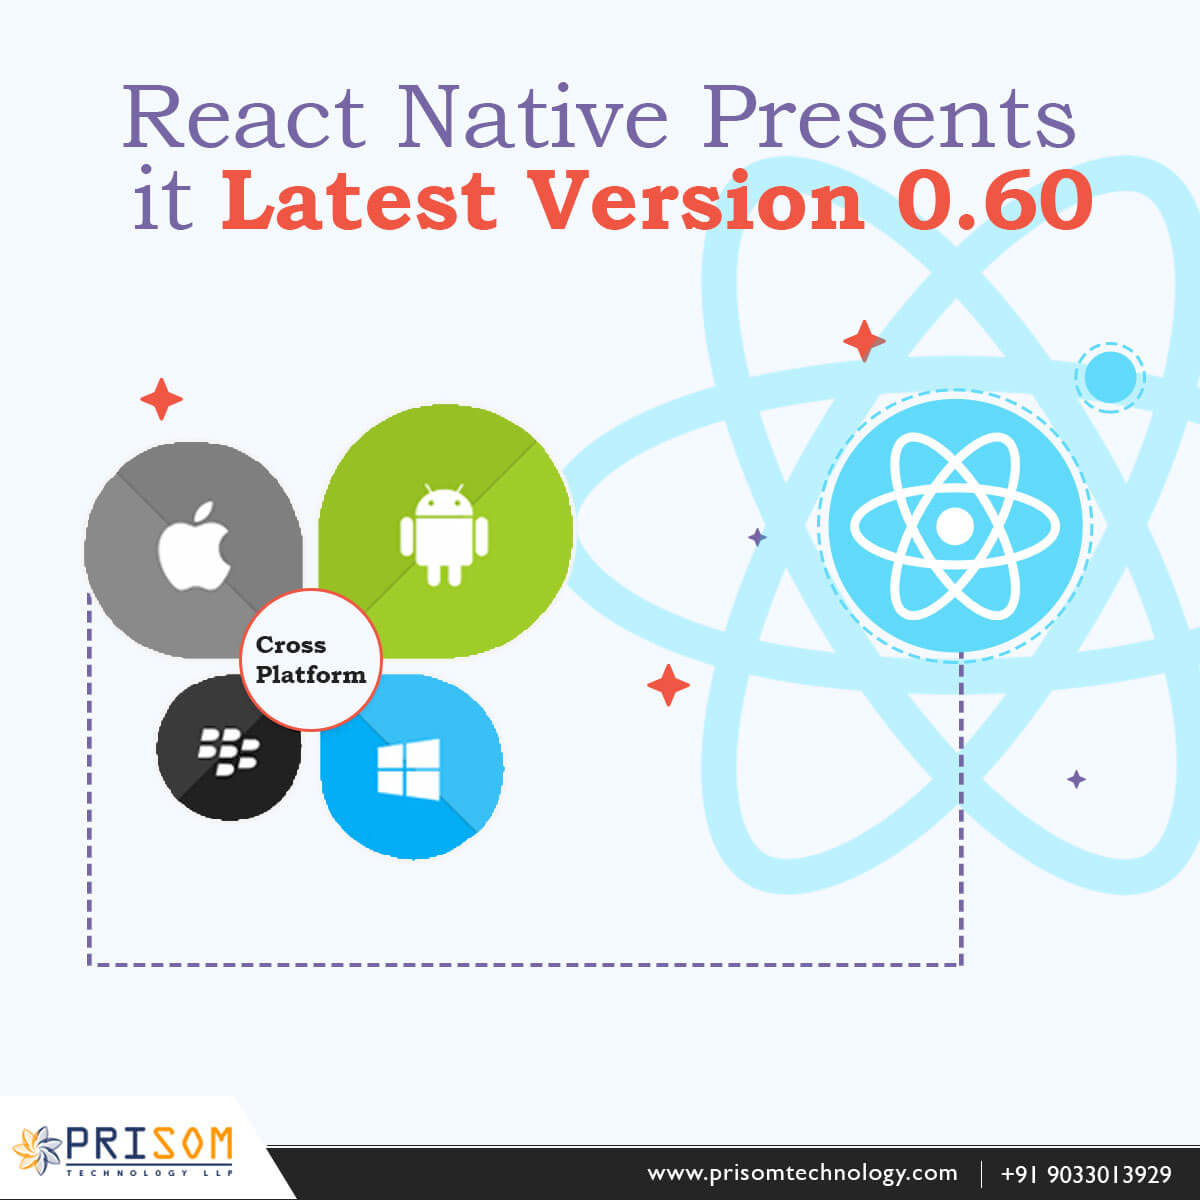 React Native Presents it Latest Version 0.60